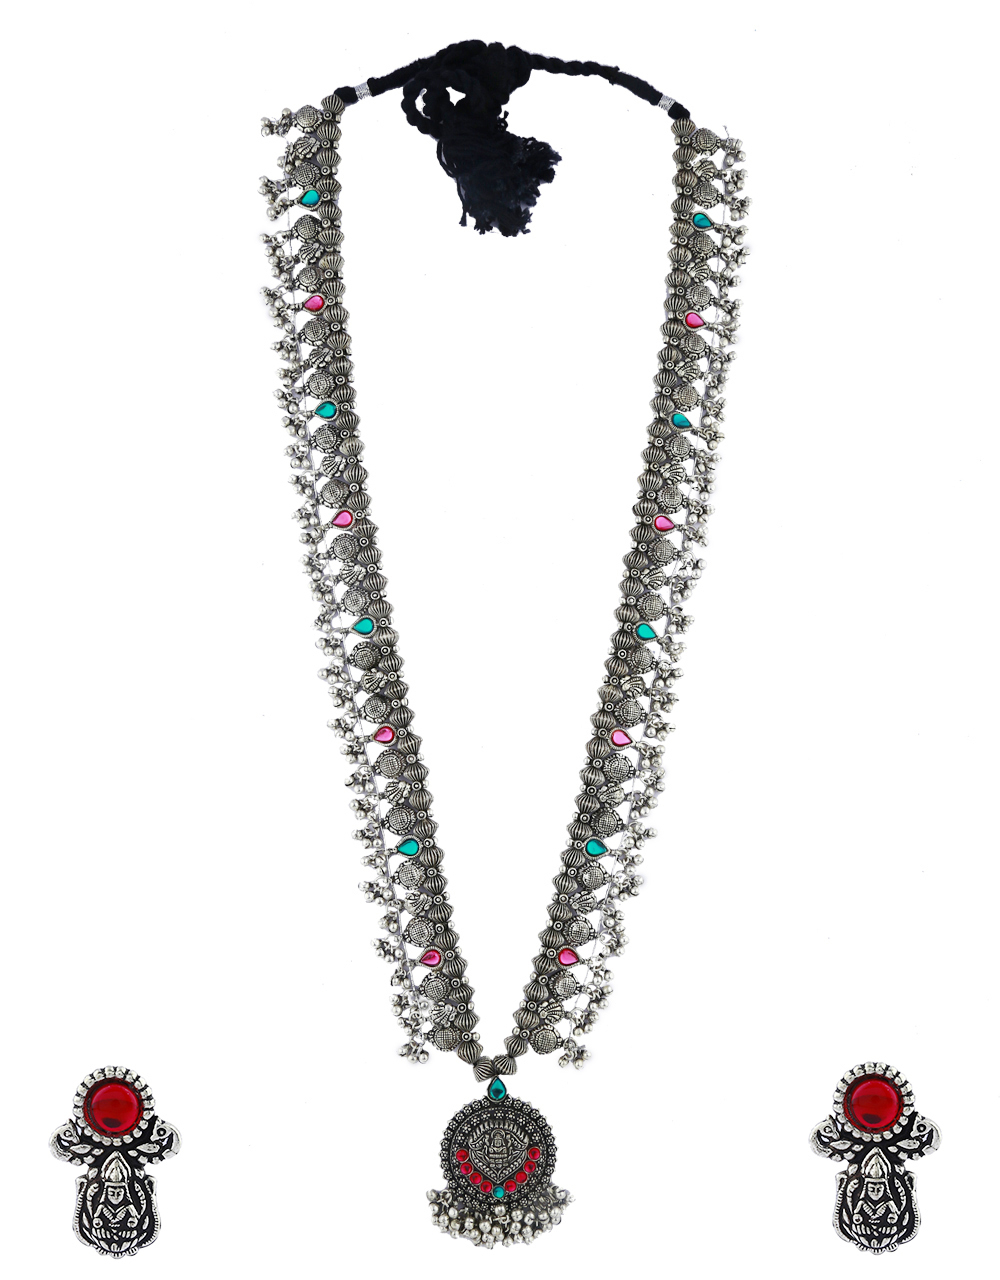 Anuradha Art Silver Tone Traditional Long Necklace Set For Women|Navratri Jewellery, Necklace Set For Women